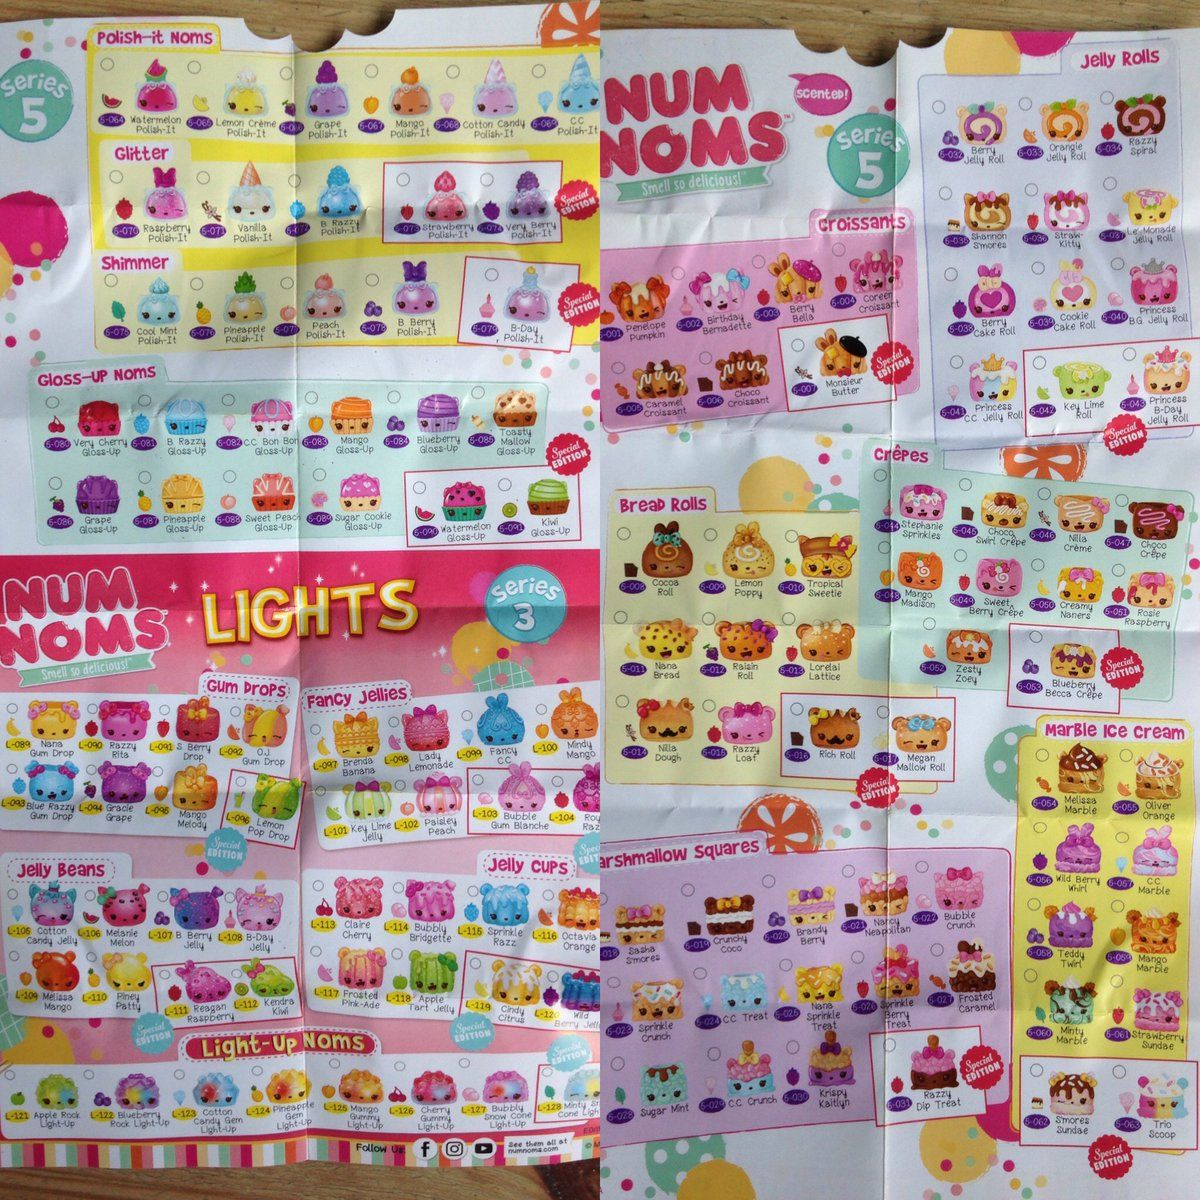 Lollies Or Candy Lolliesorcandy Twitter Num Noms Series 5 Check List Nom Noms Toys Num Noms Toys Lollies